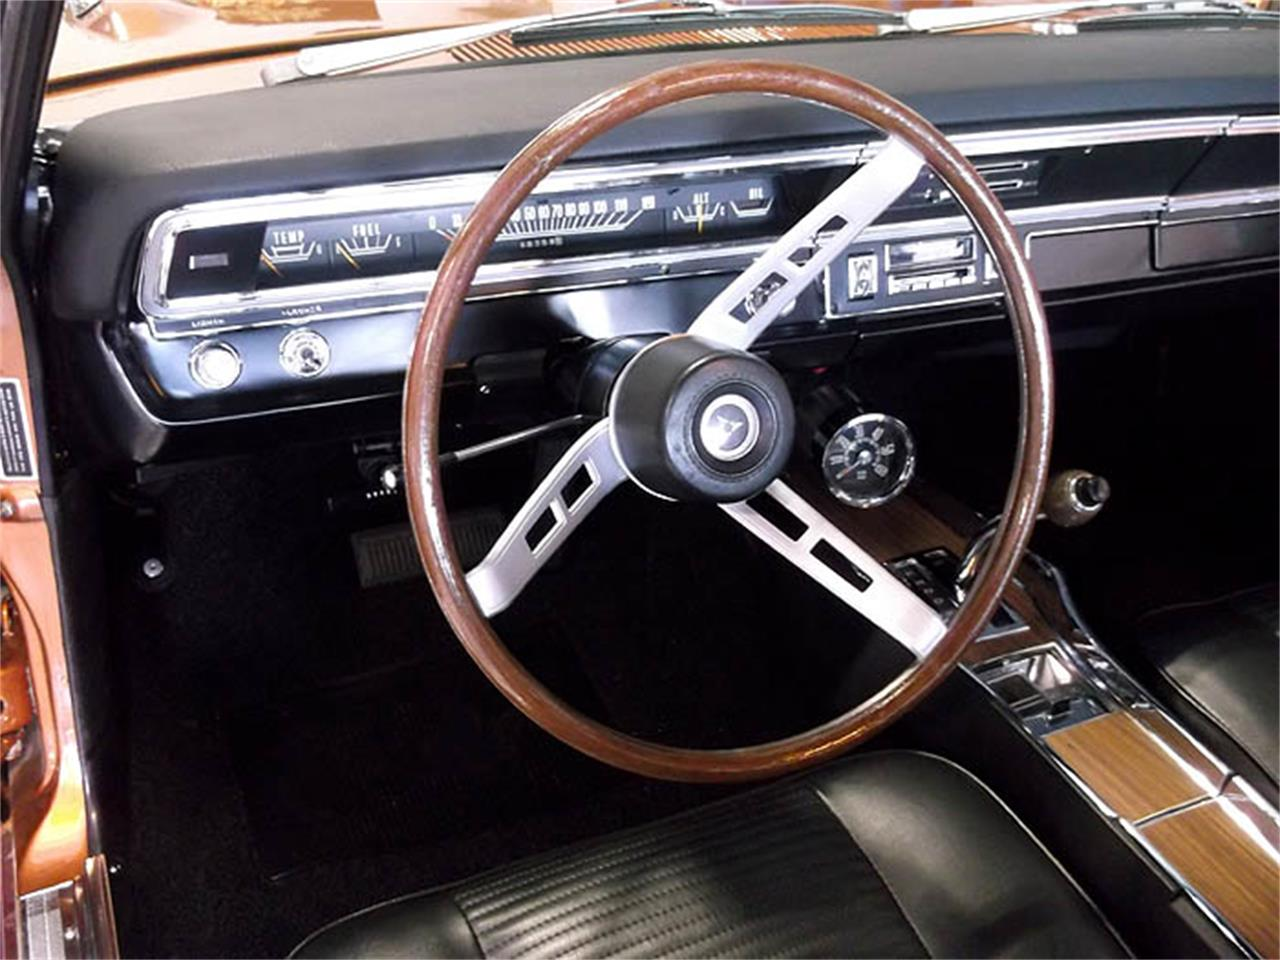 Large Picture of '69 Dodge Dart GTS - $77,500.00 Offered by a Private Seller - Q0YM